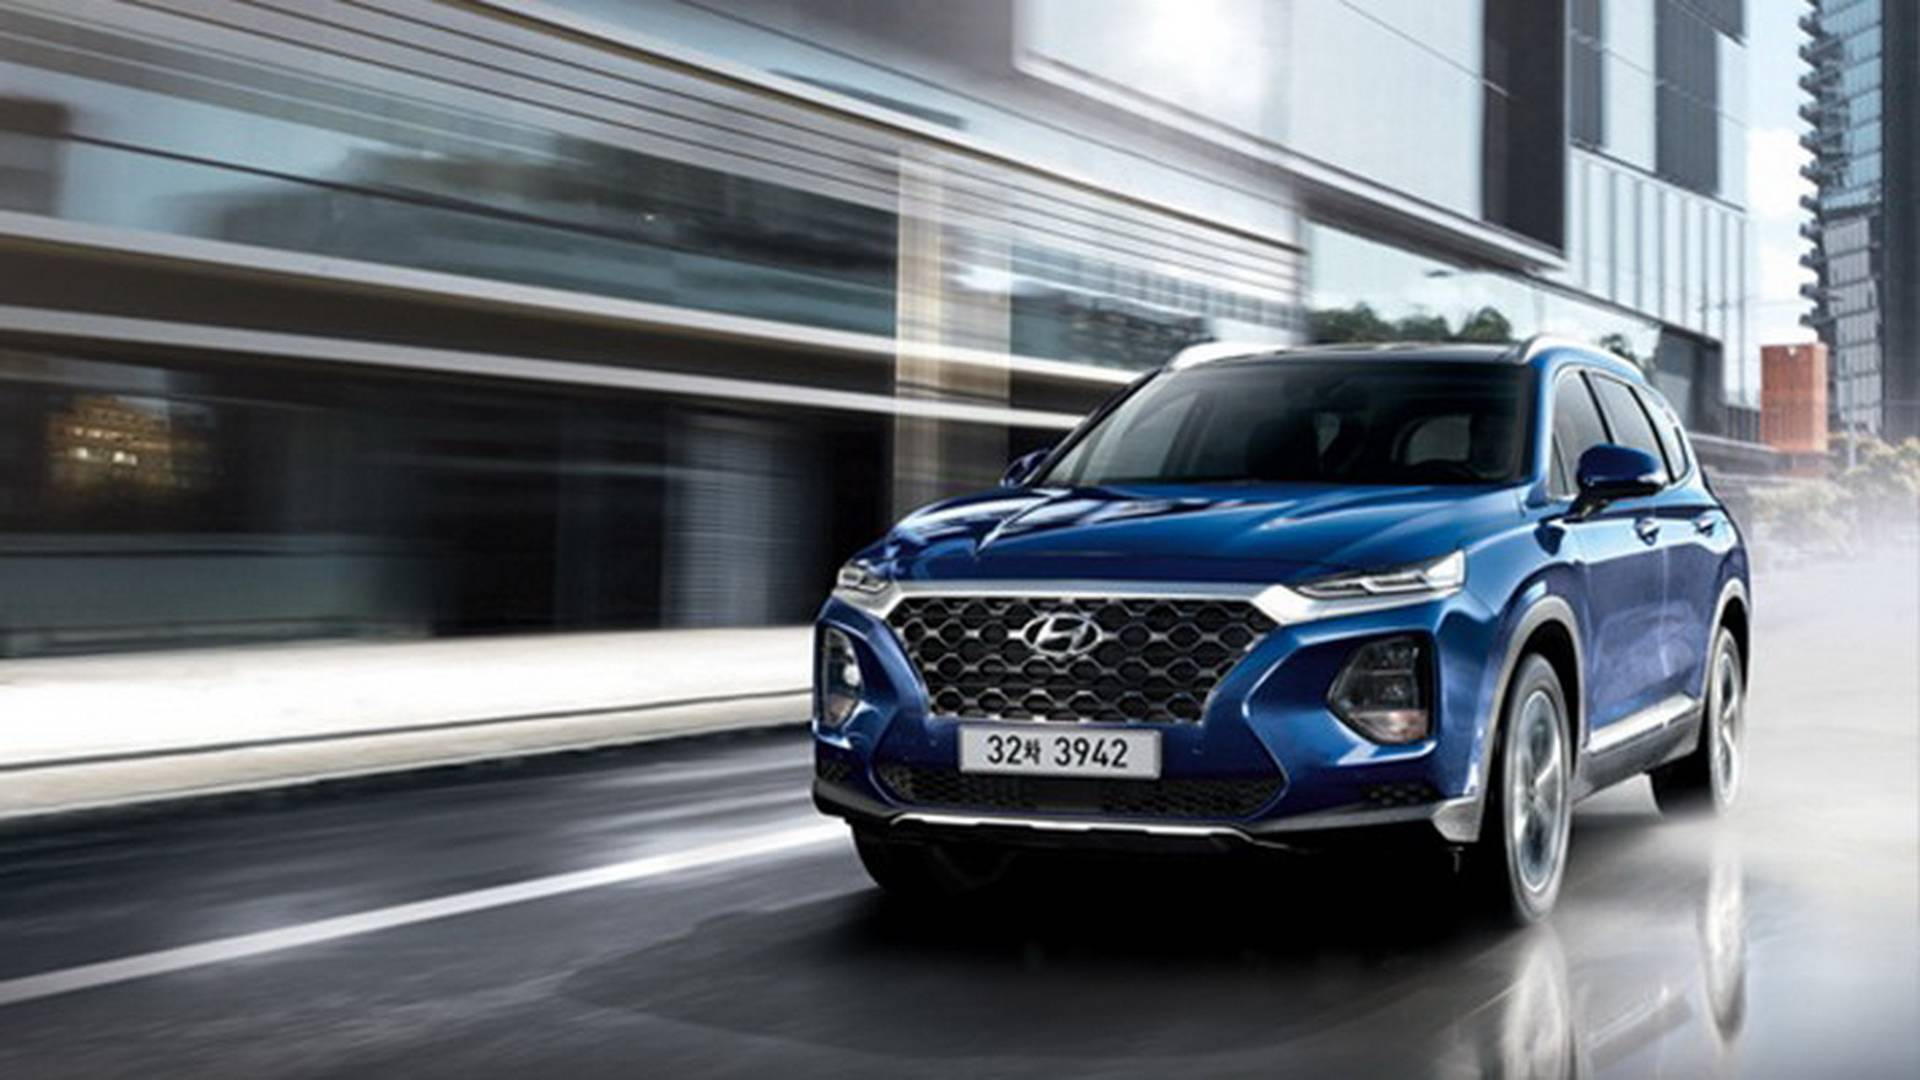 2019 Hyundai Santa Fe Looks Magnificent In New Official